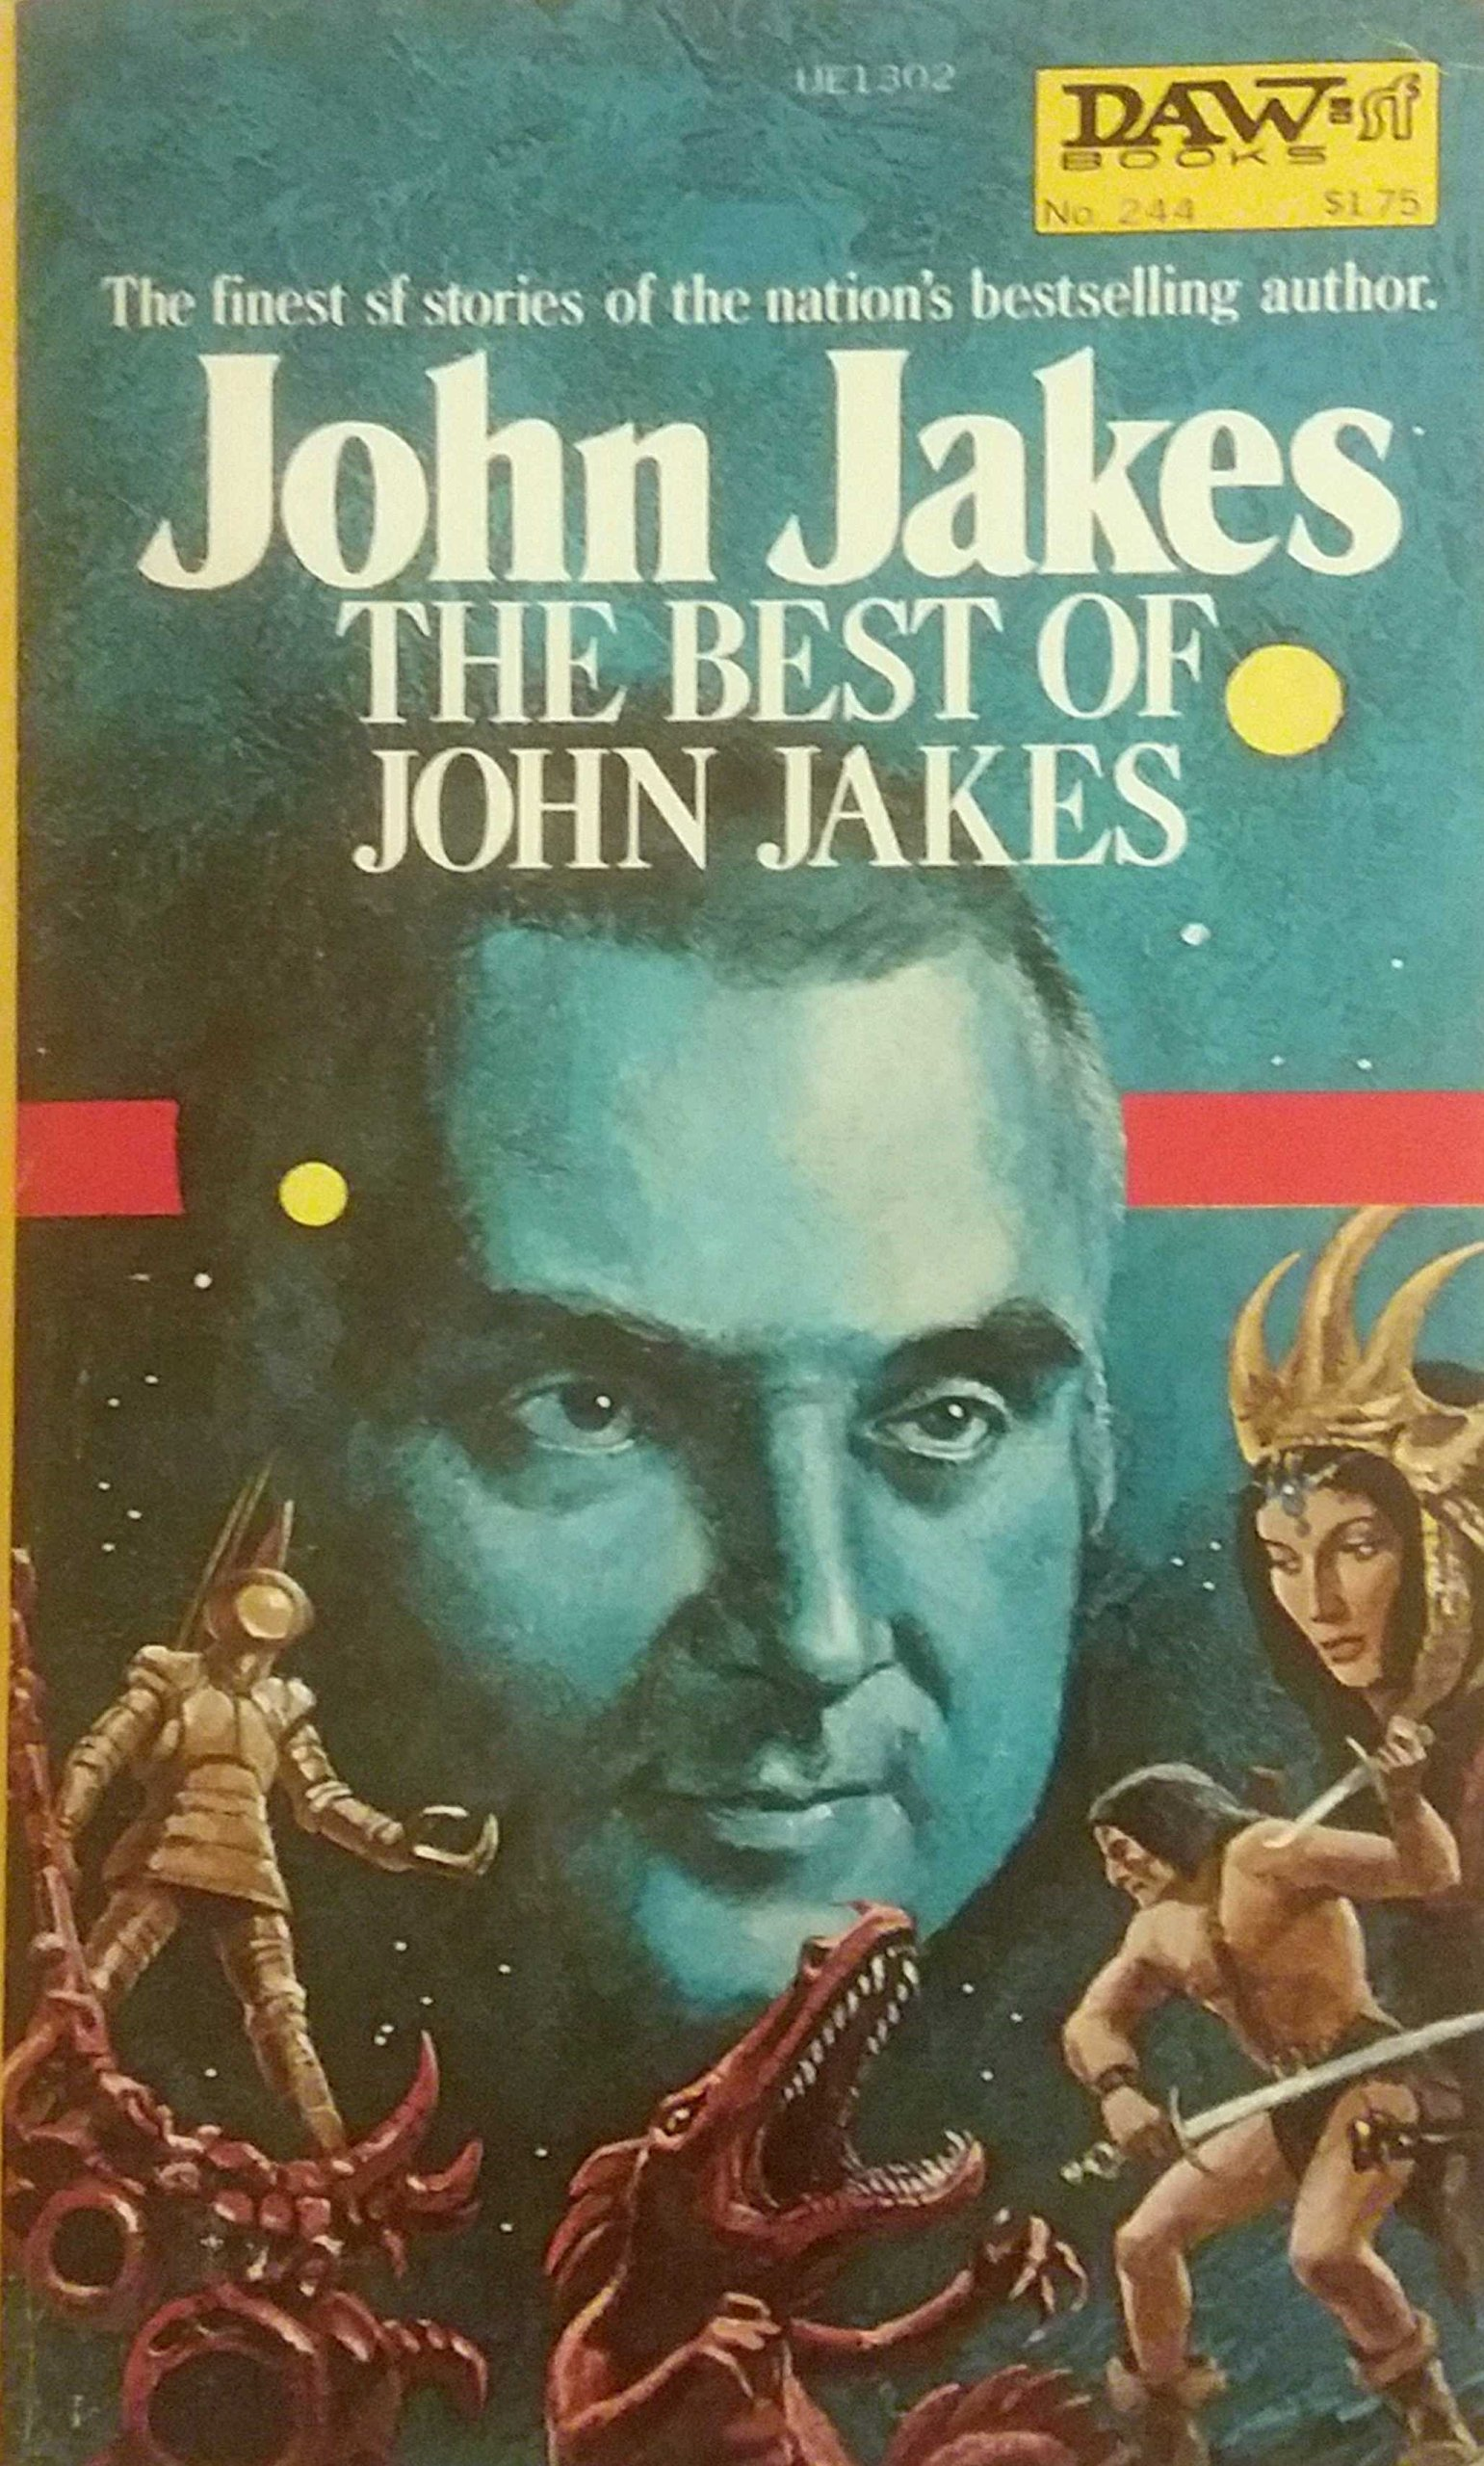 The Best of John Jakes